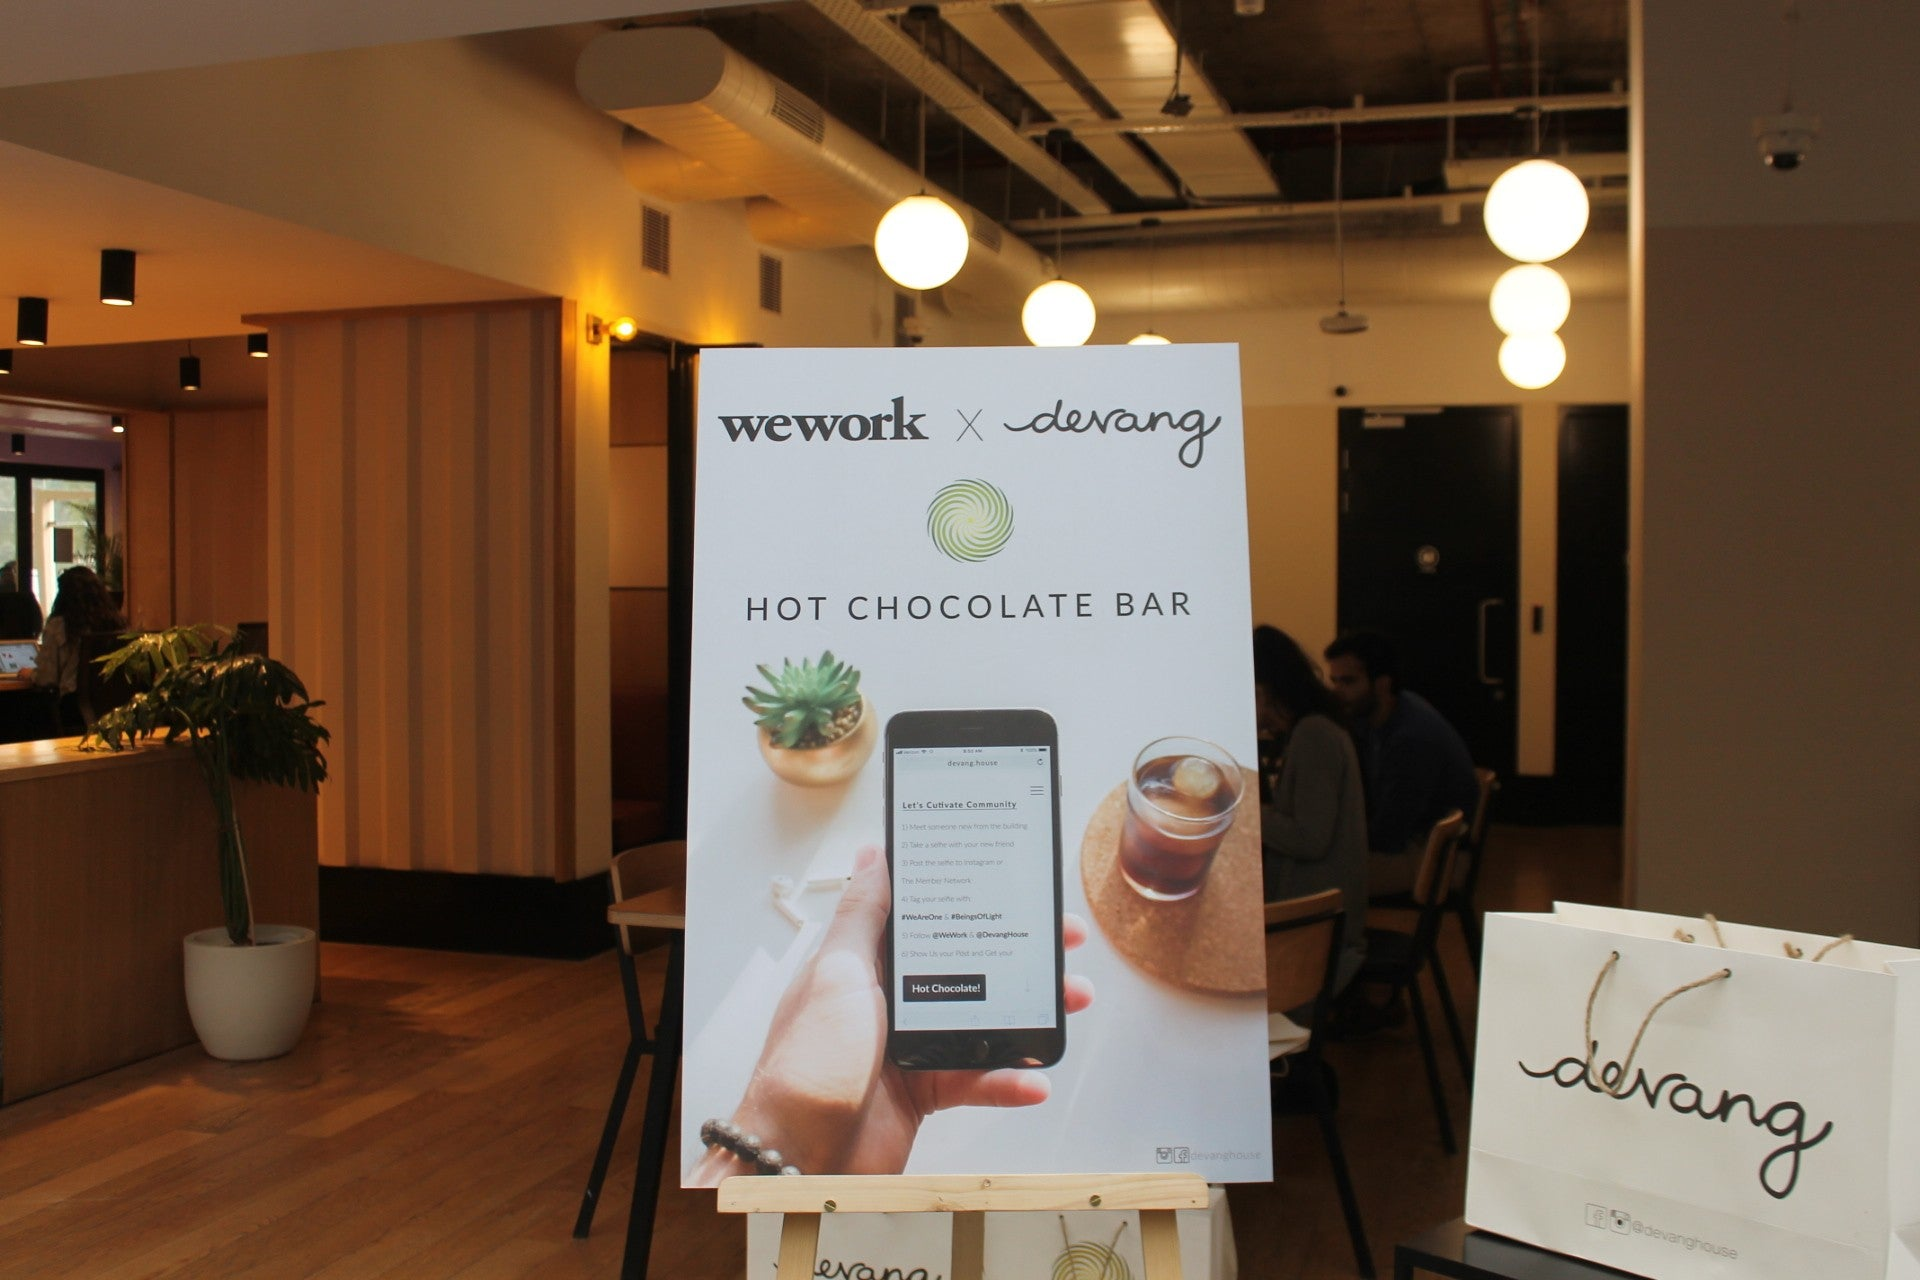 Hot Chocolate Bar, Wework